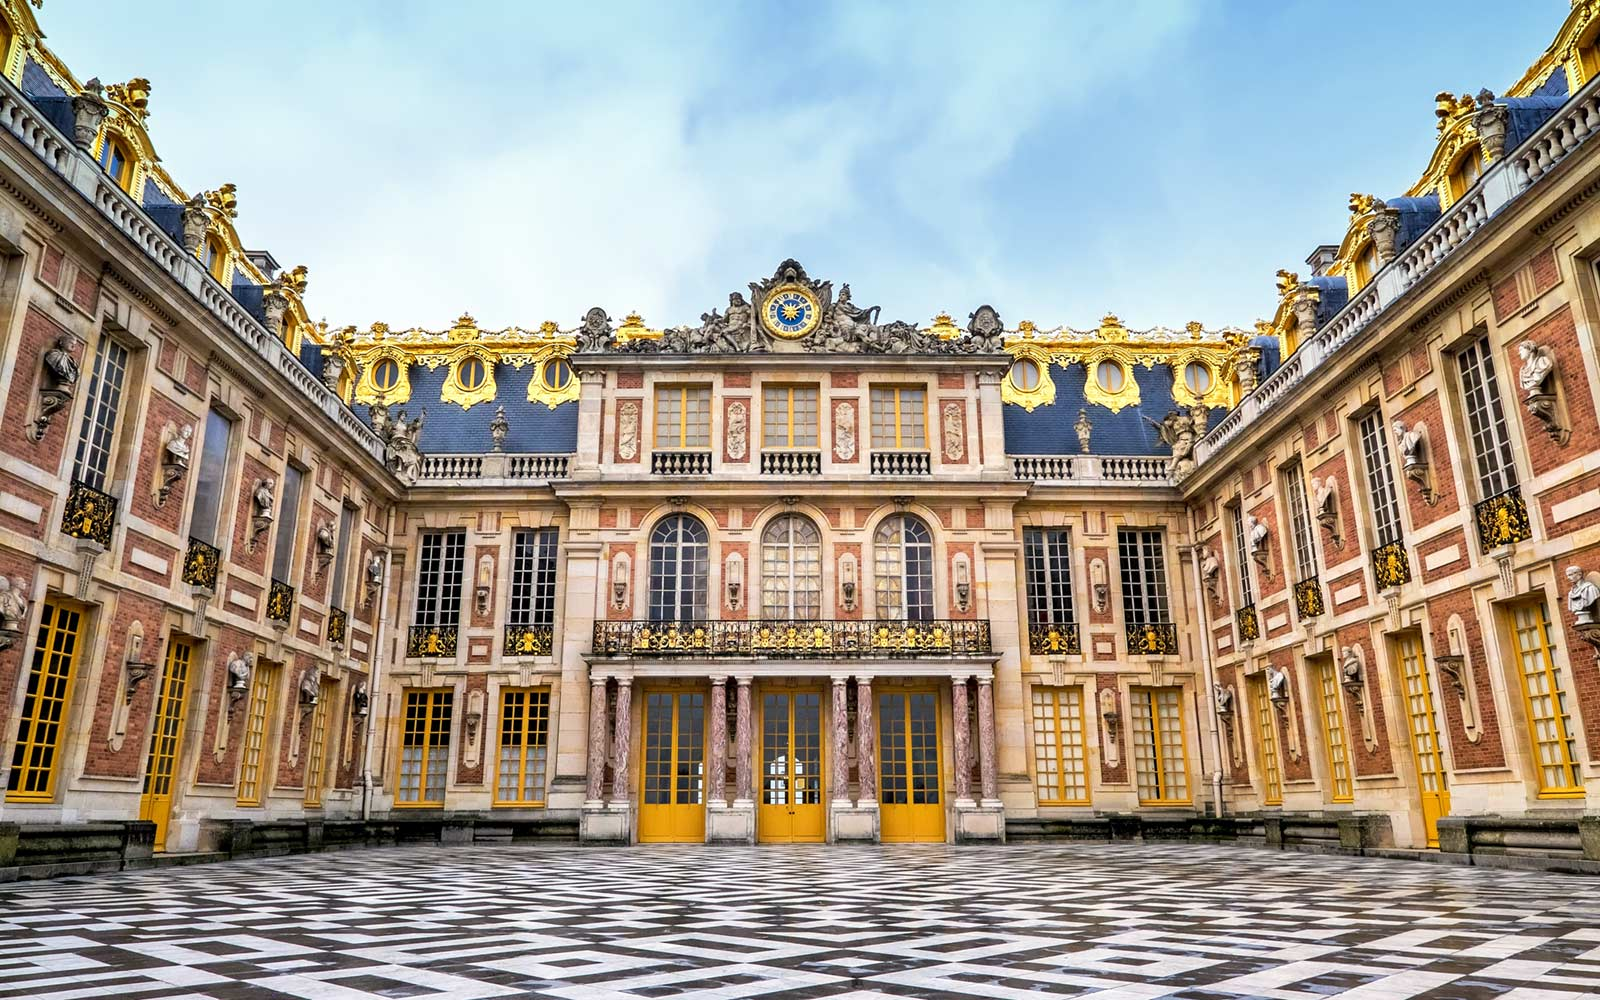 Palace of Versailles, Franch